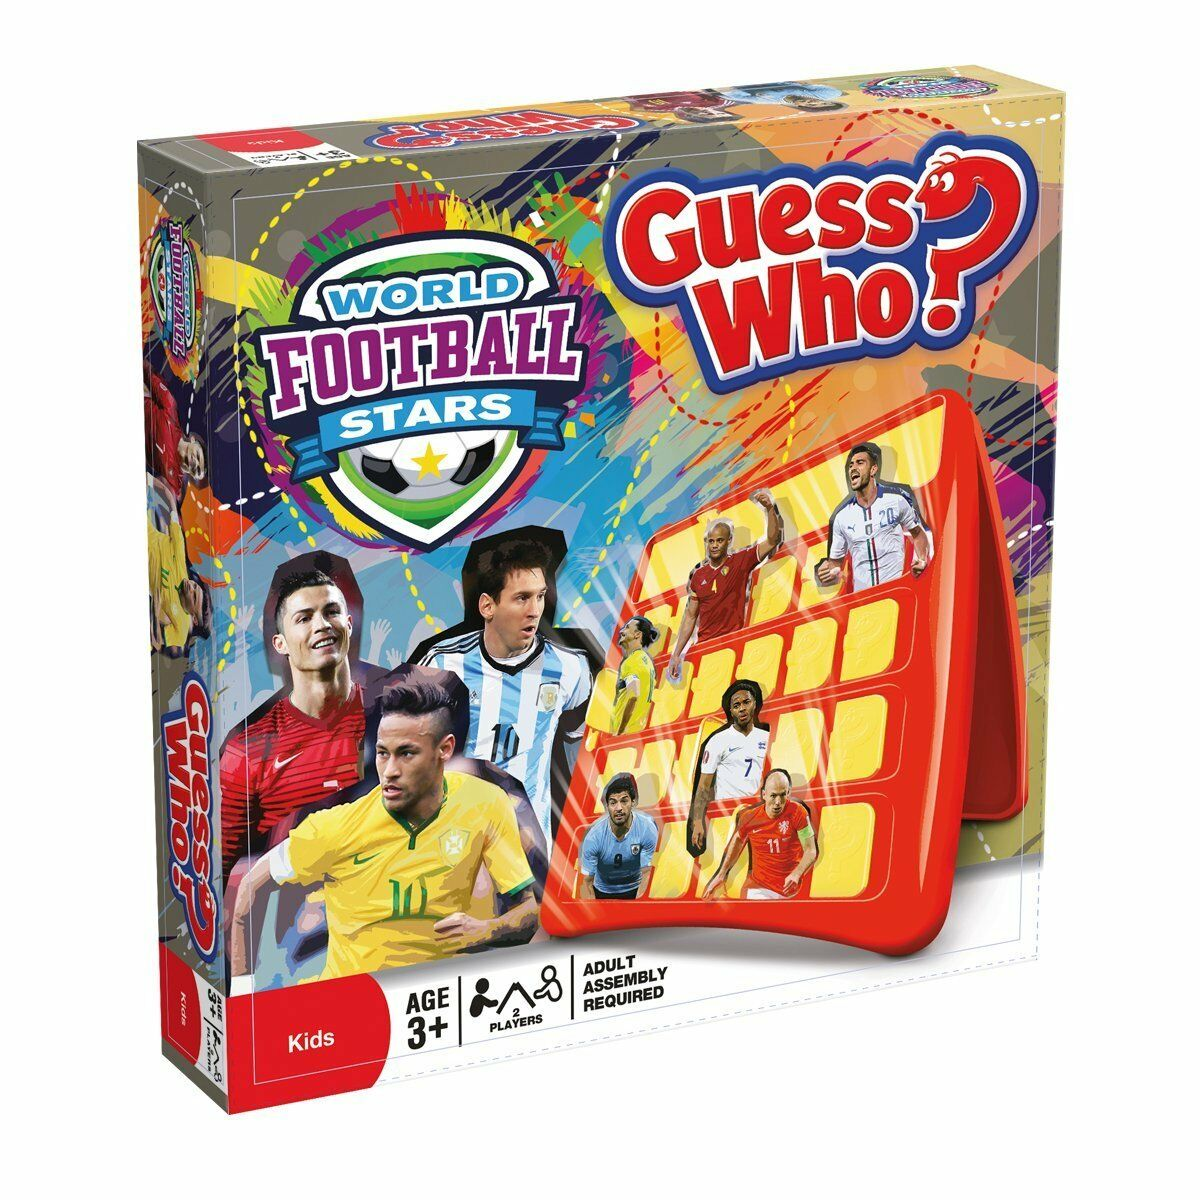 Hasbro World Football Stars Themed Guess Who Junior Fun 2 Player Game